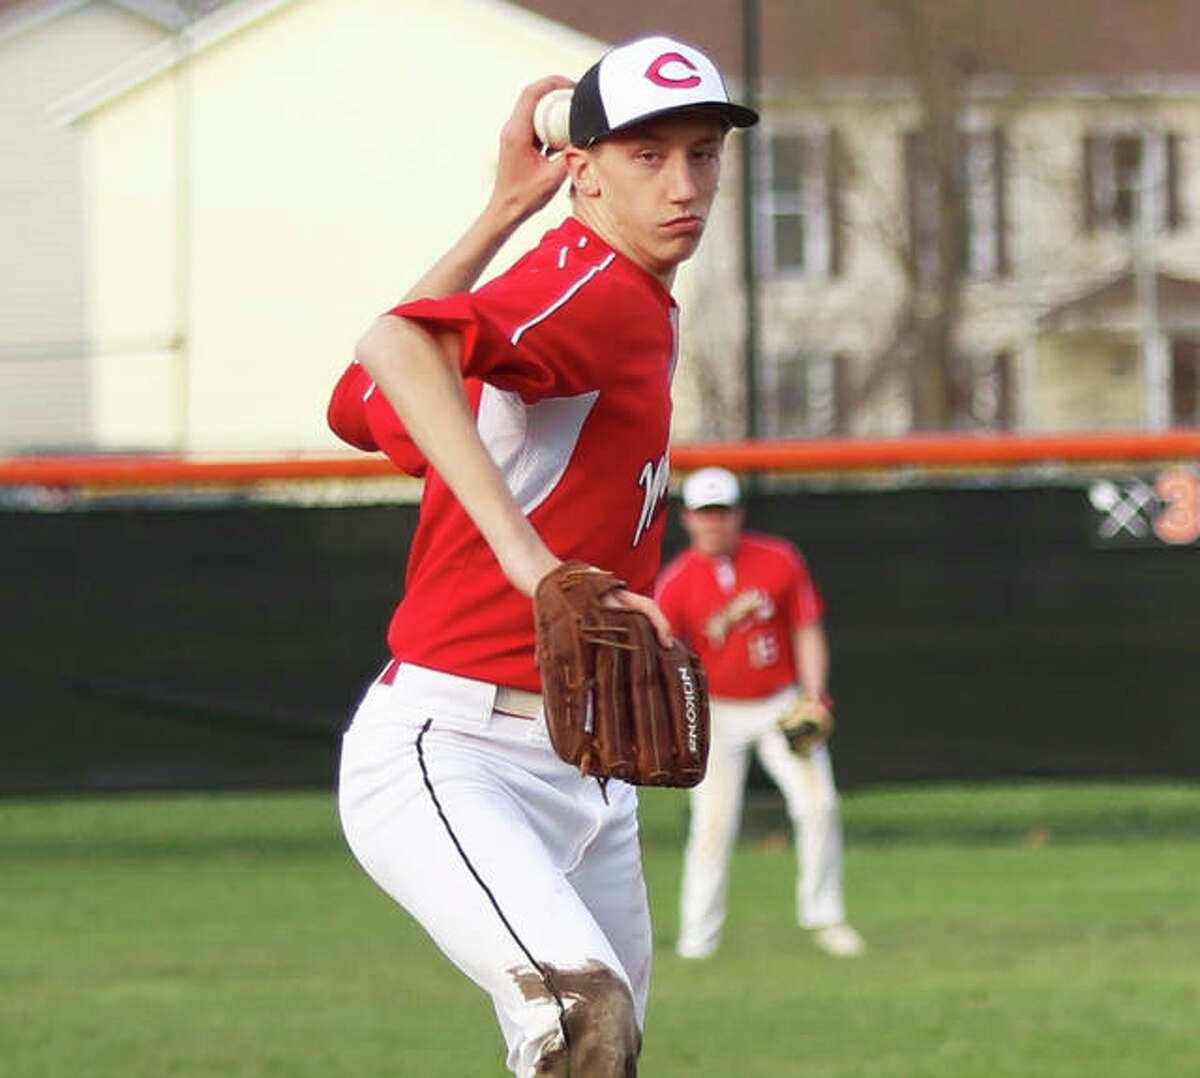 Calhoun's Corey Nelson delivers a pitch to the plate during his sophomore season in a game at Greenfield. After losing his junior season to cancellation because of COVID-19, Nelson wants back on the mound as a senior this spring.